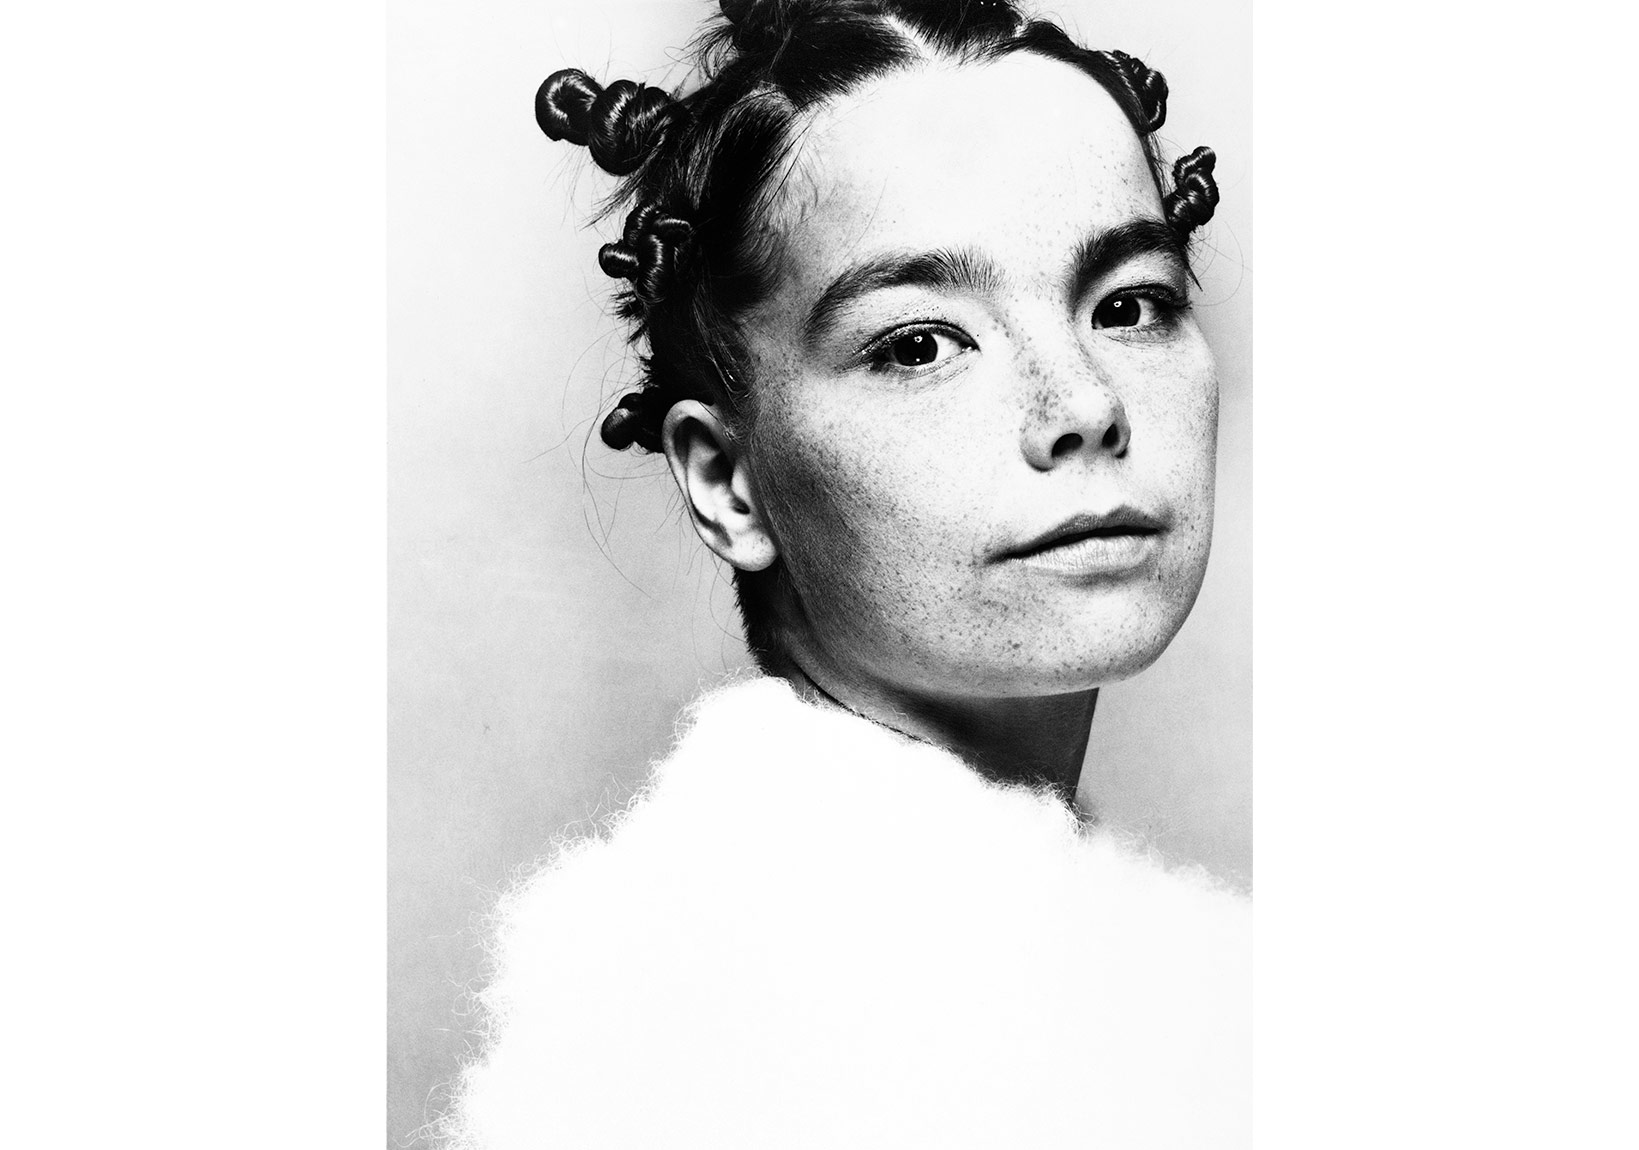 Björk, The Face, 1993Credit: Photo by Glen Luchford